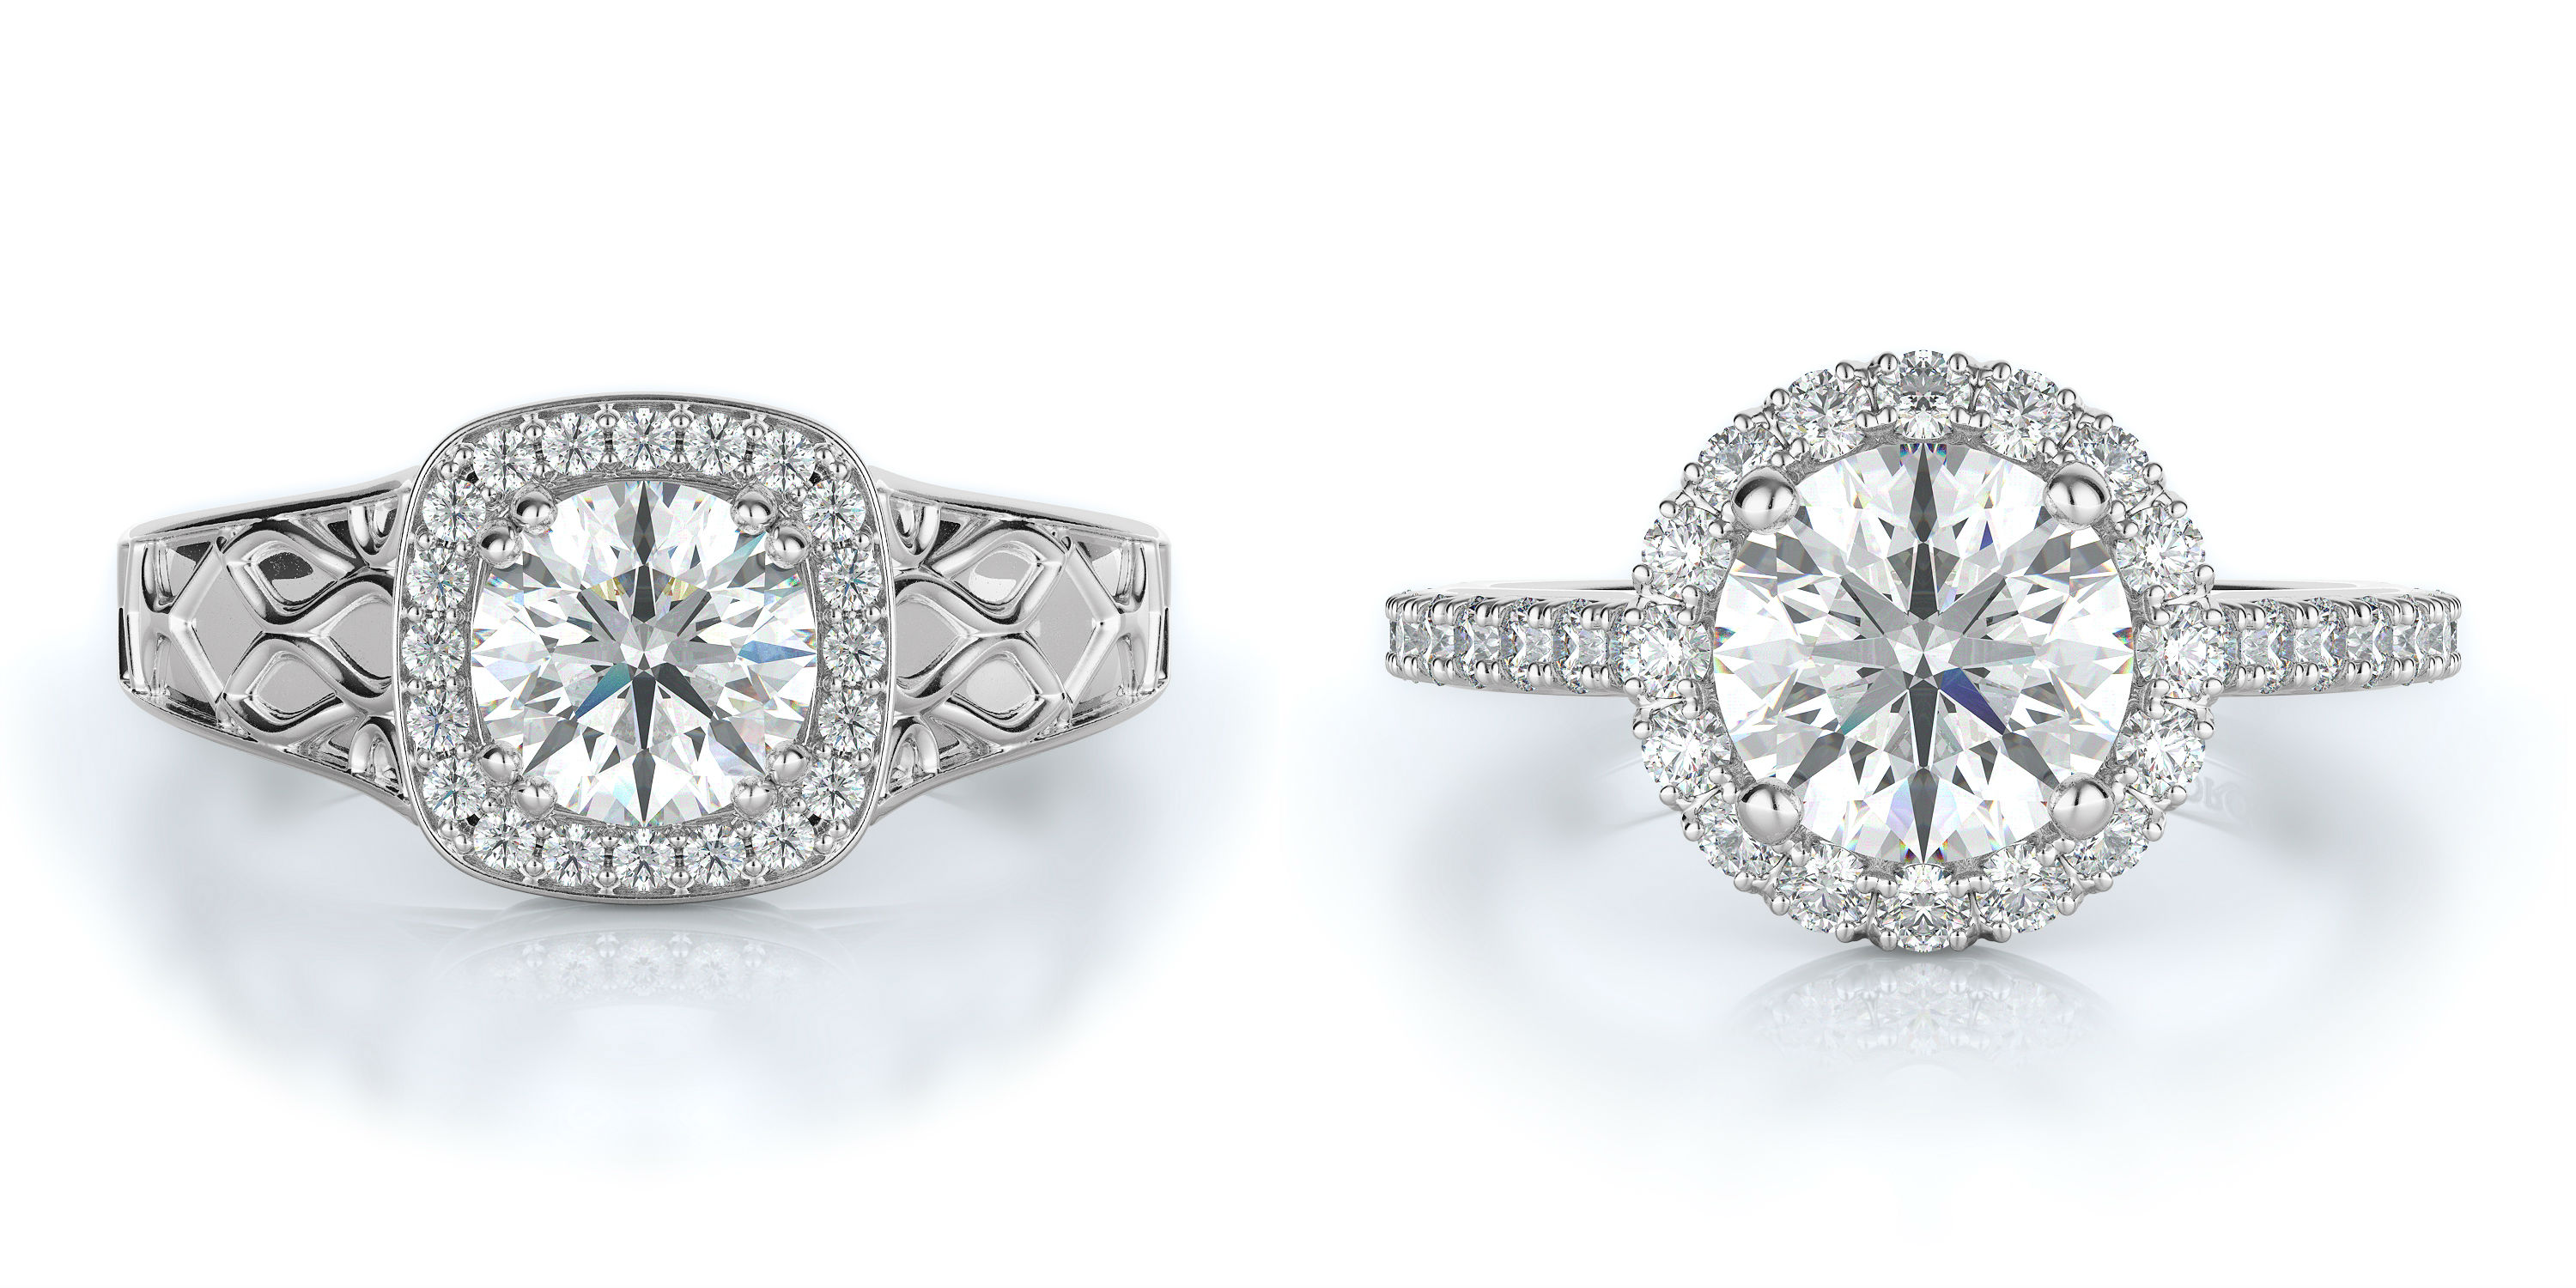 Halo Engagement Rings at Torosi